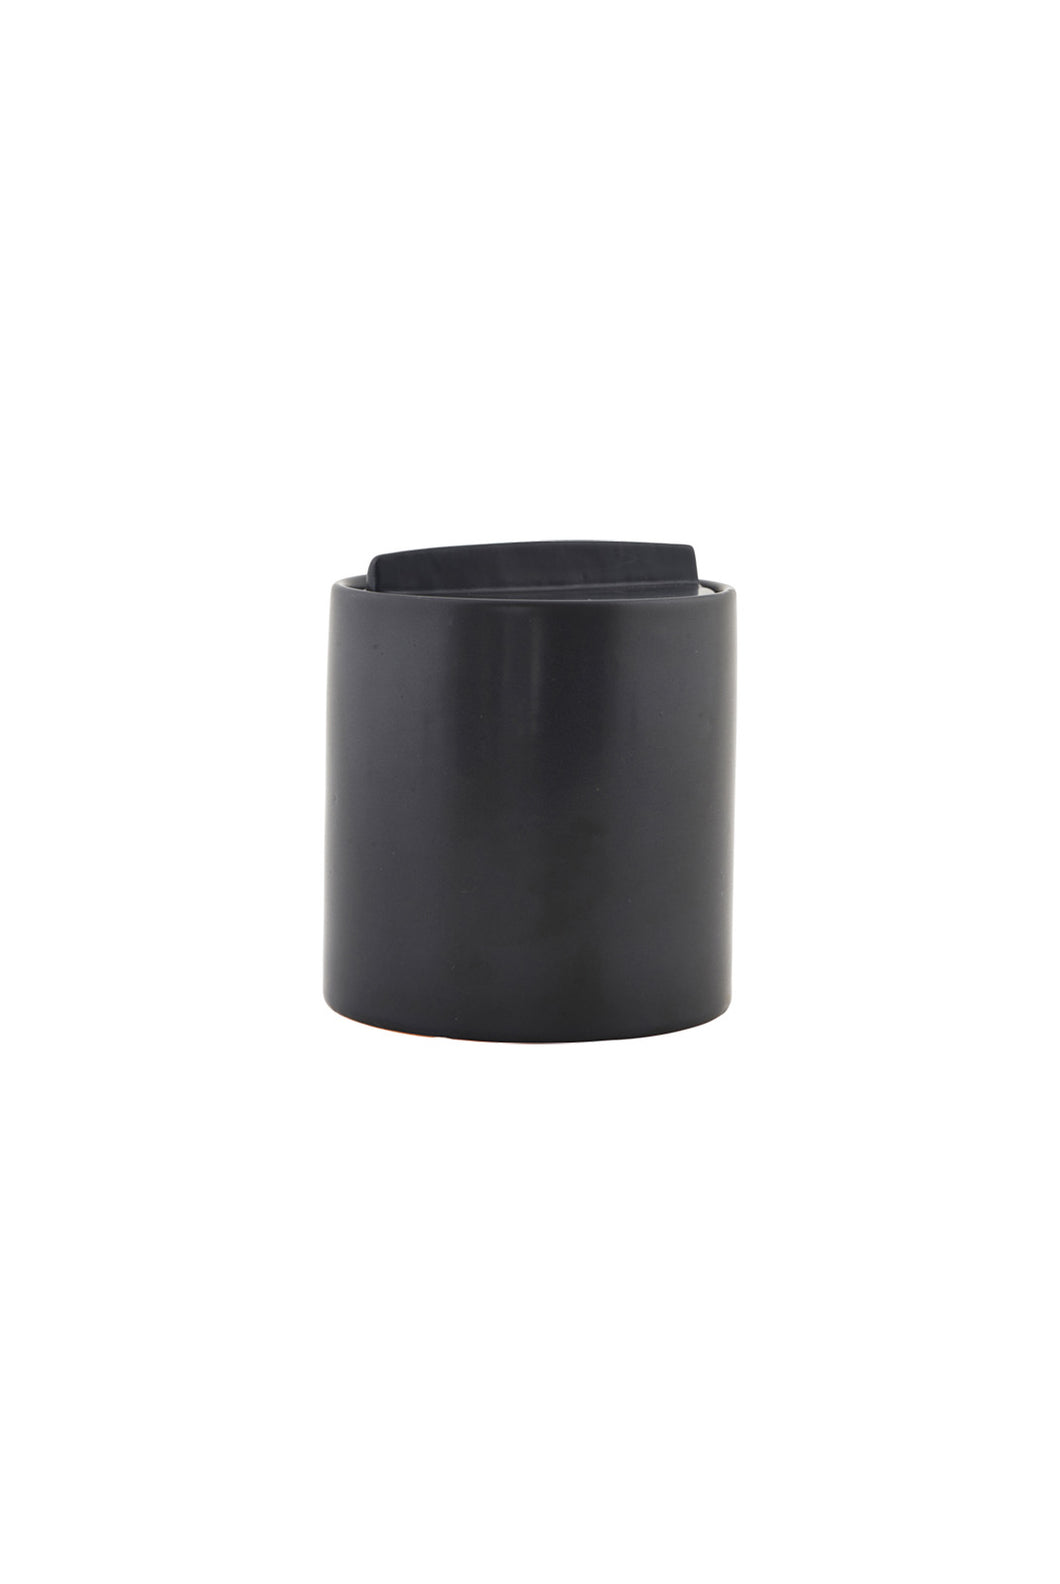 House Doctor - Kitchen Jar - Black - Small